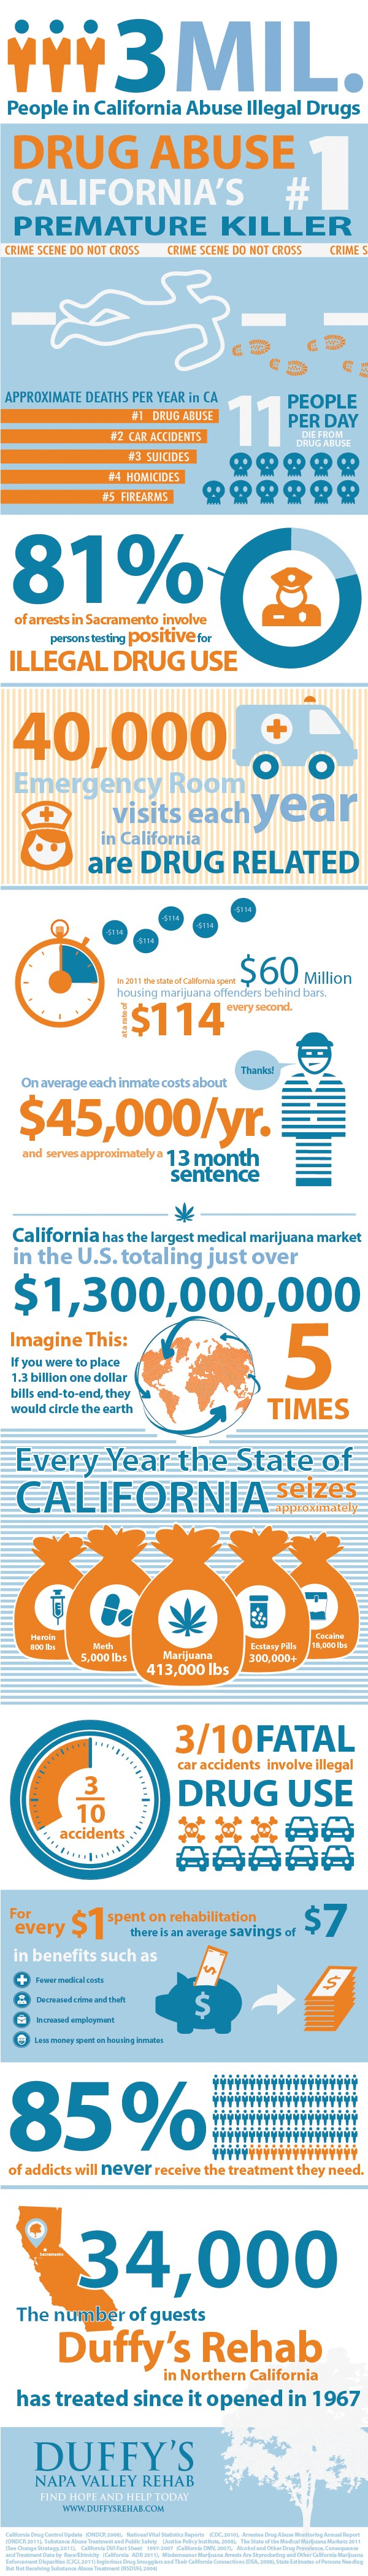 california drug abuse statistics